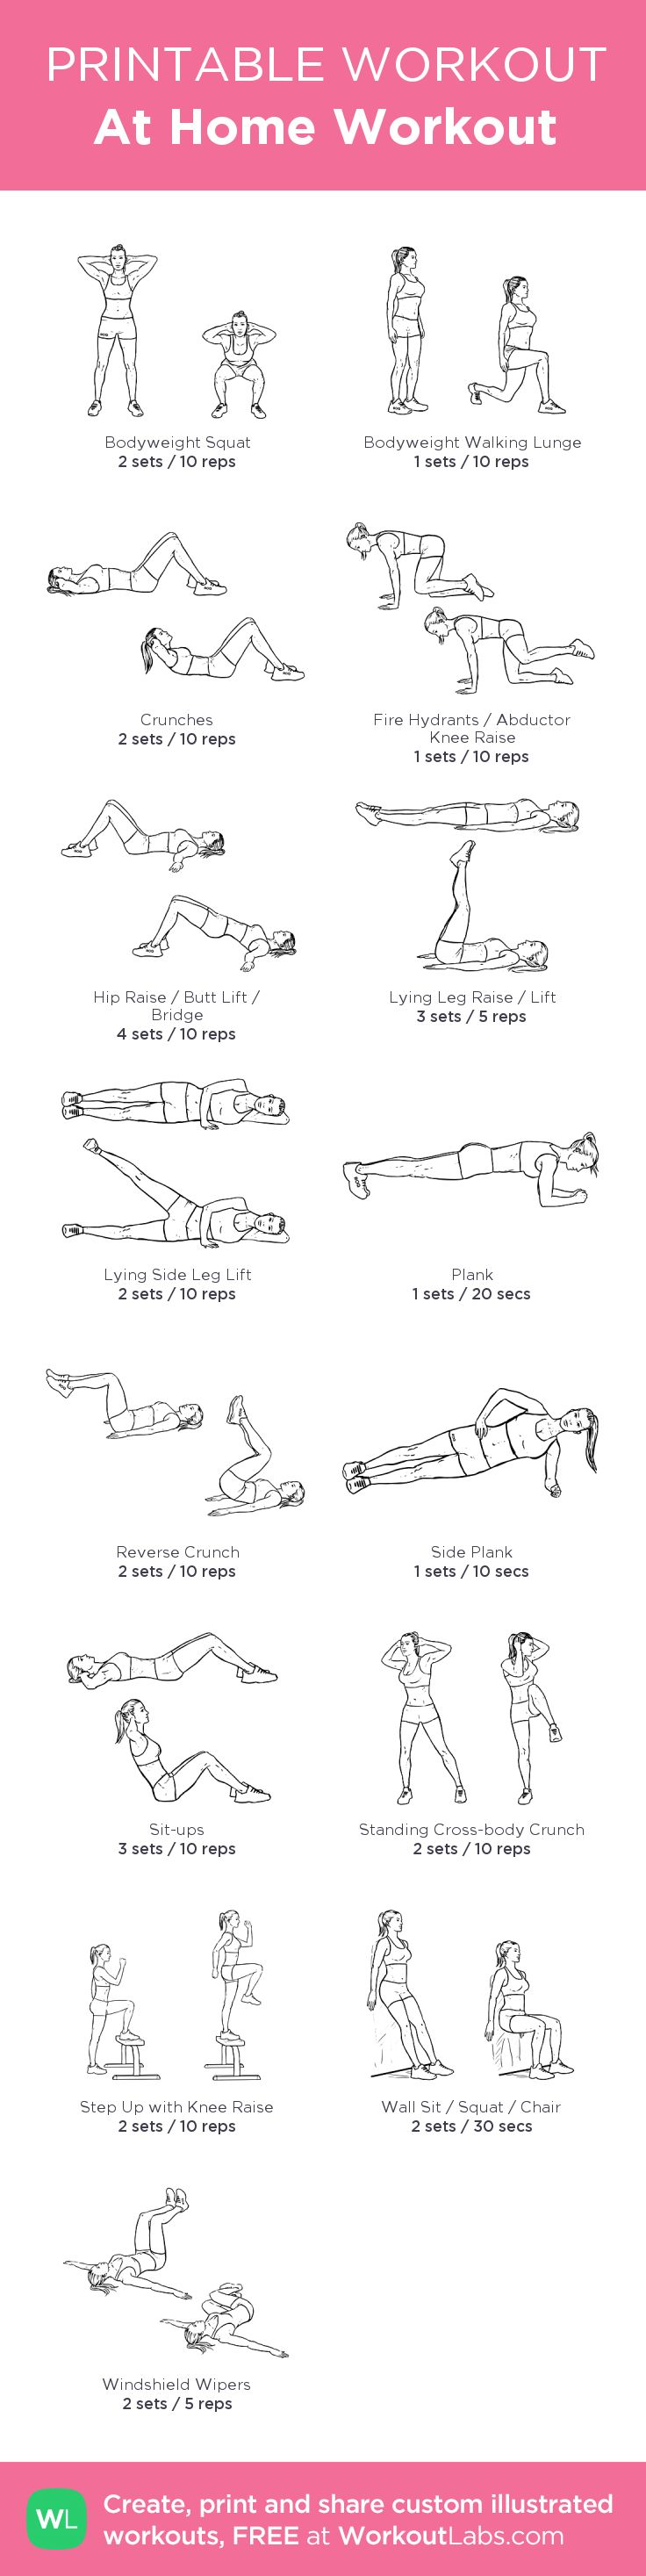 At Home Workout: my visual workout created at WorkoutLabs.com • Click through to customize and download as a FREE PDF! #customworkout